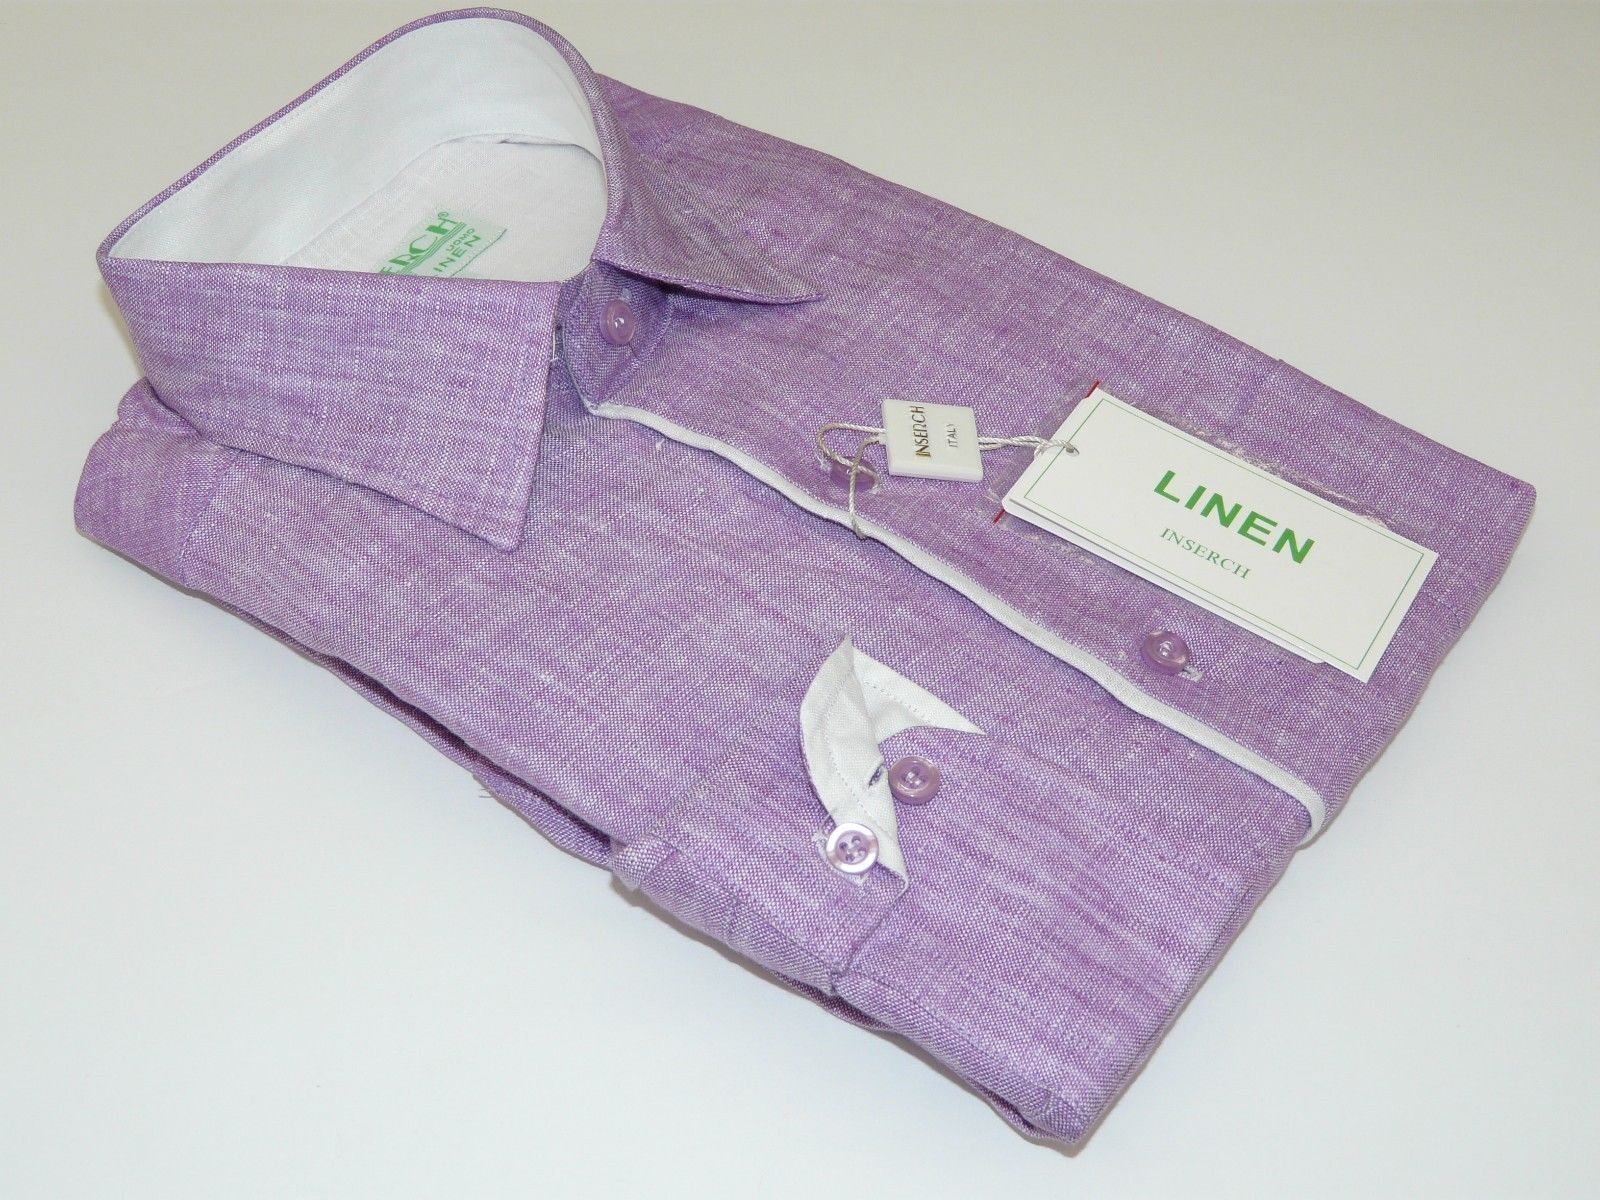 Mens Inserch Linen Shirt Long Sleeves High Quality Summer Cool 24116 Lavender | eBay